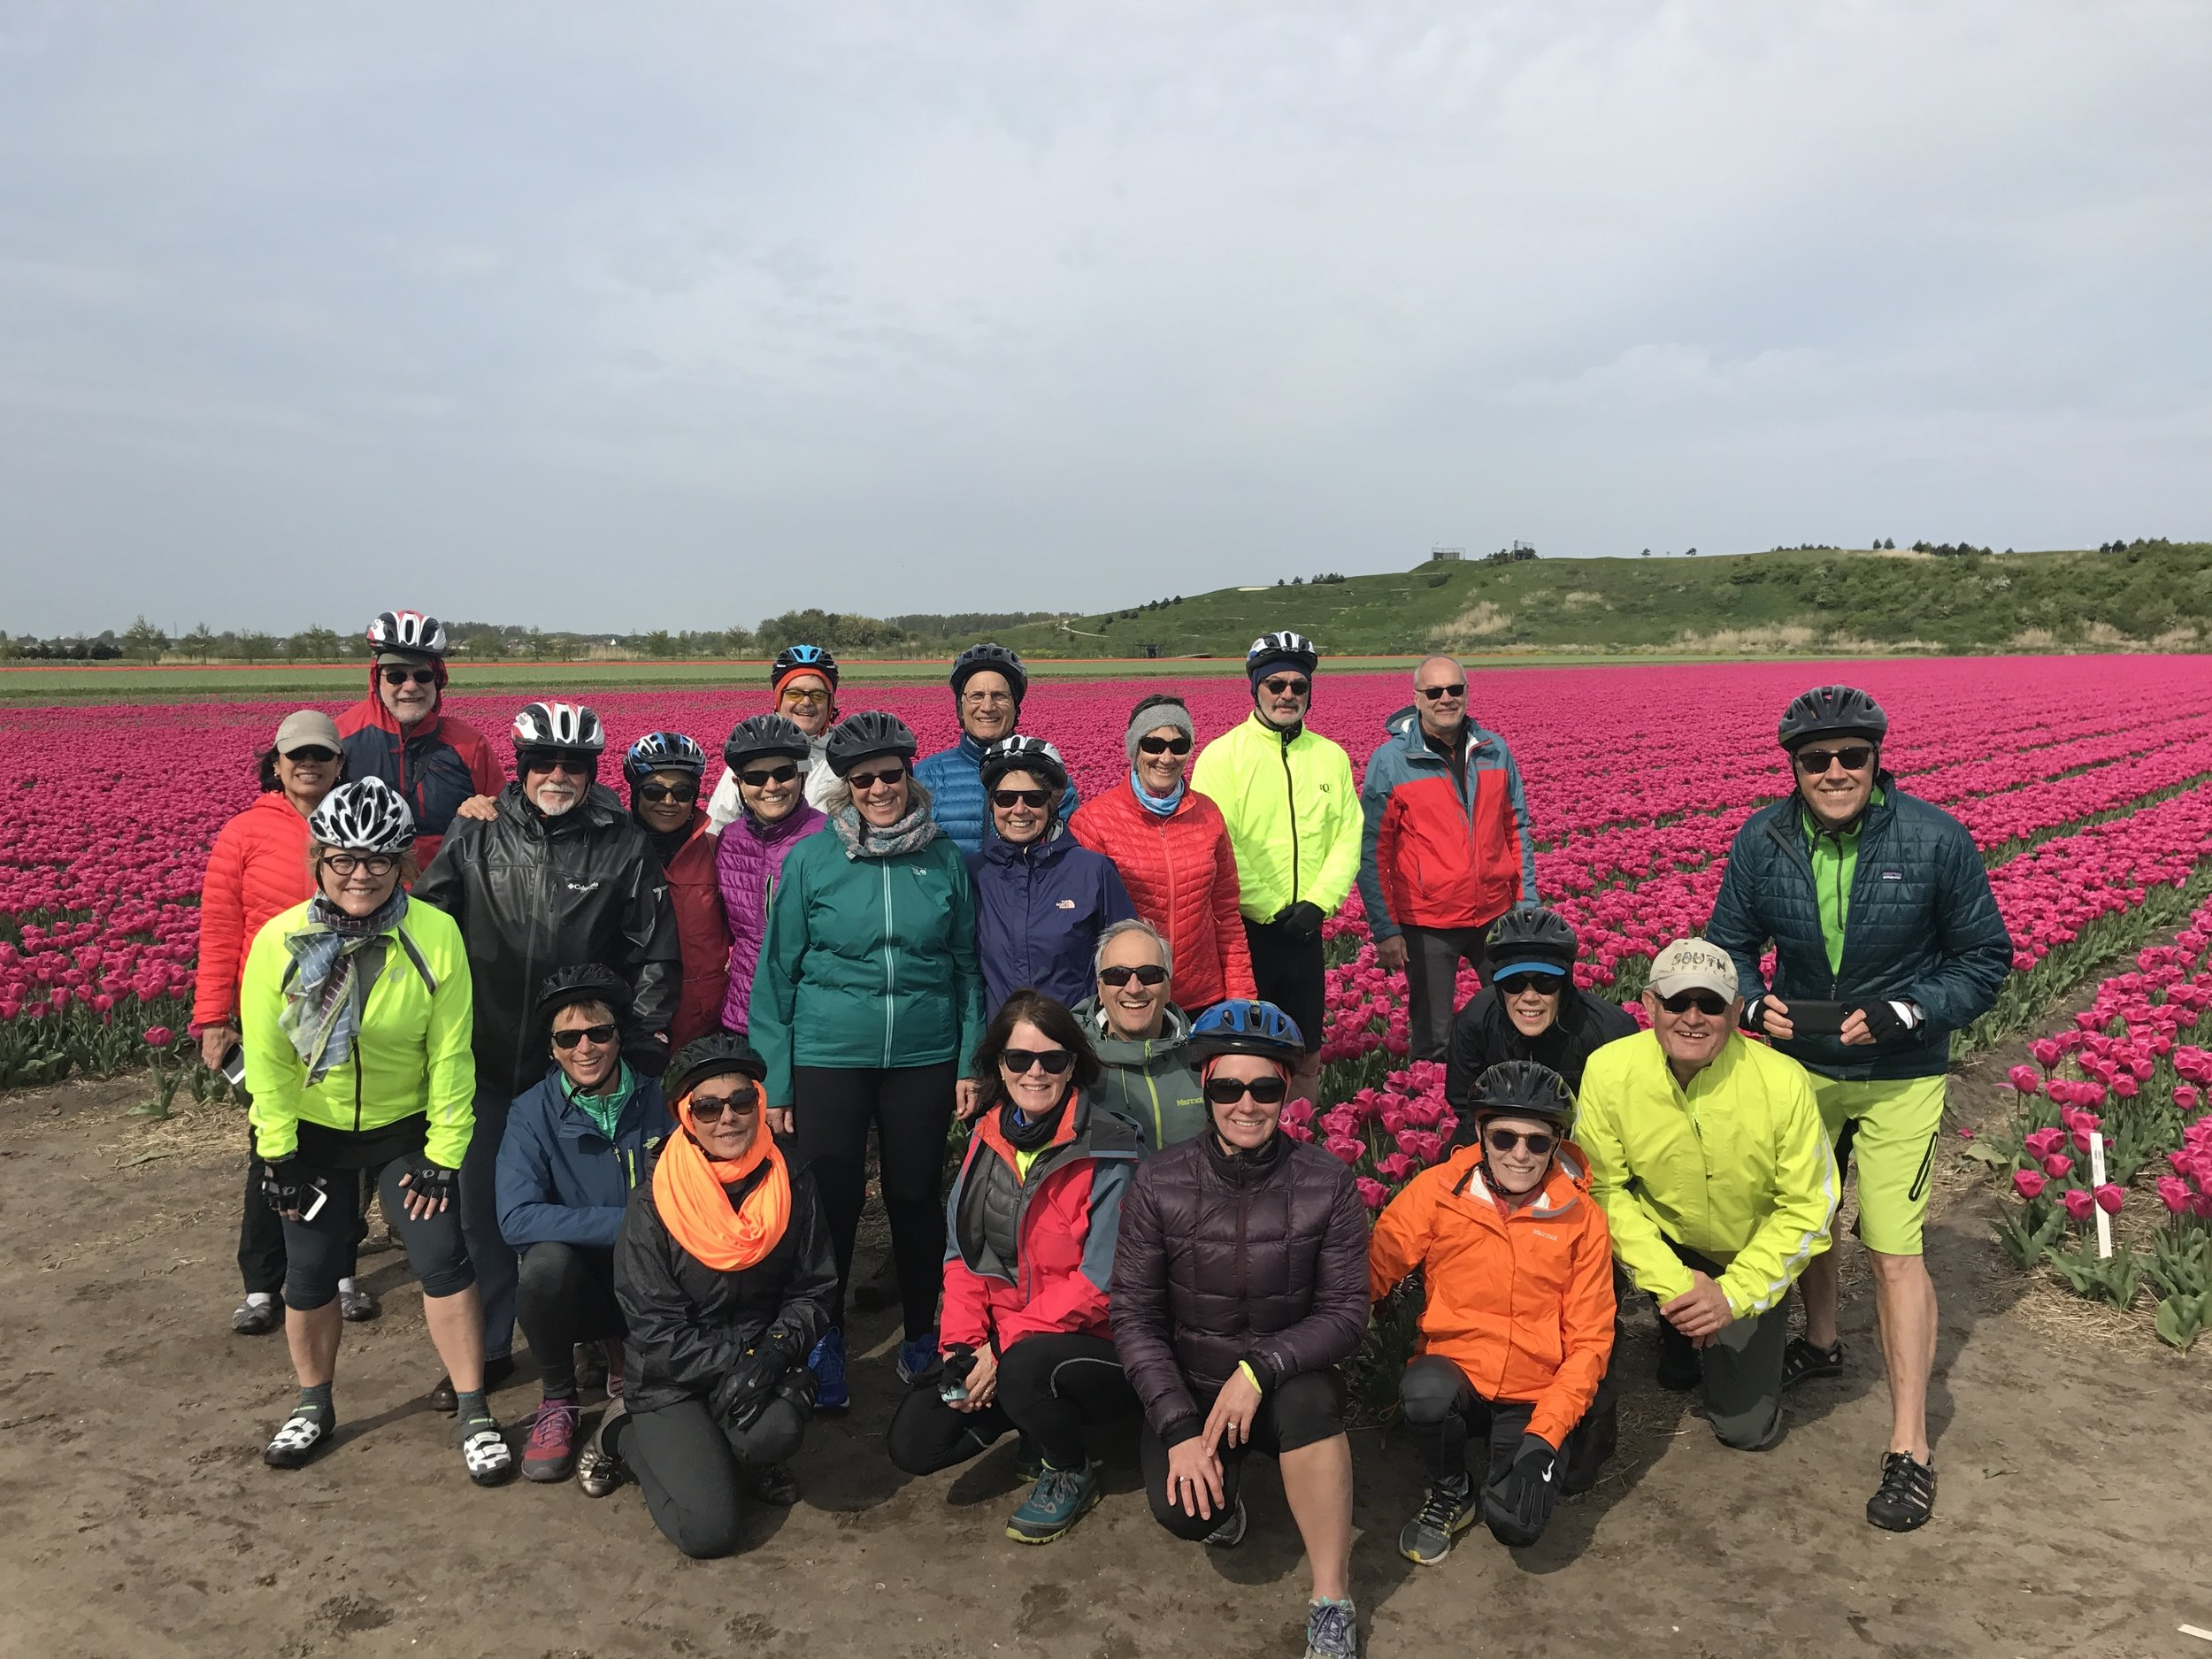 Wednesday Walkers with spouses on Bike and Barge trip in the Netherlands.